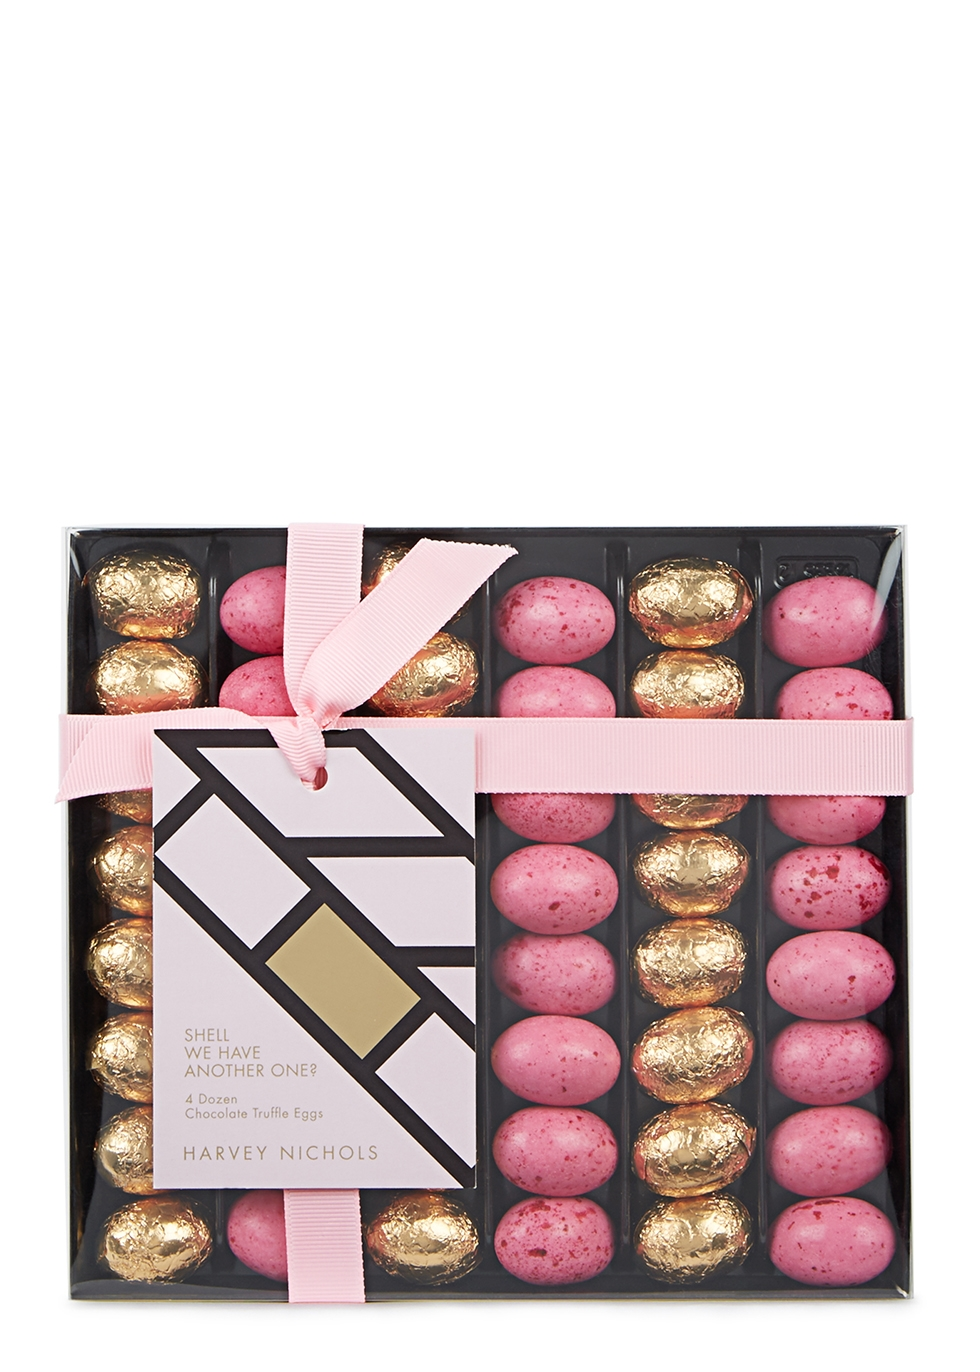 Shell We Have Another One? Four Dozen Chocolate Truffle Eggs 372g